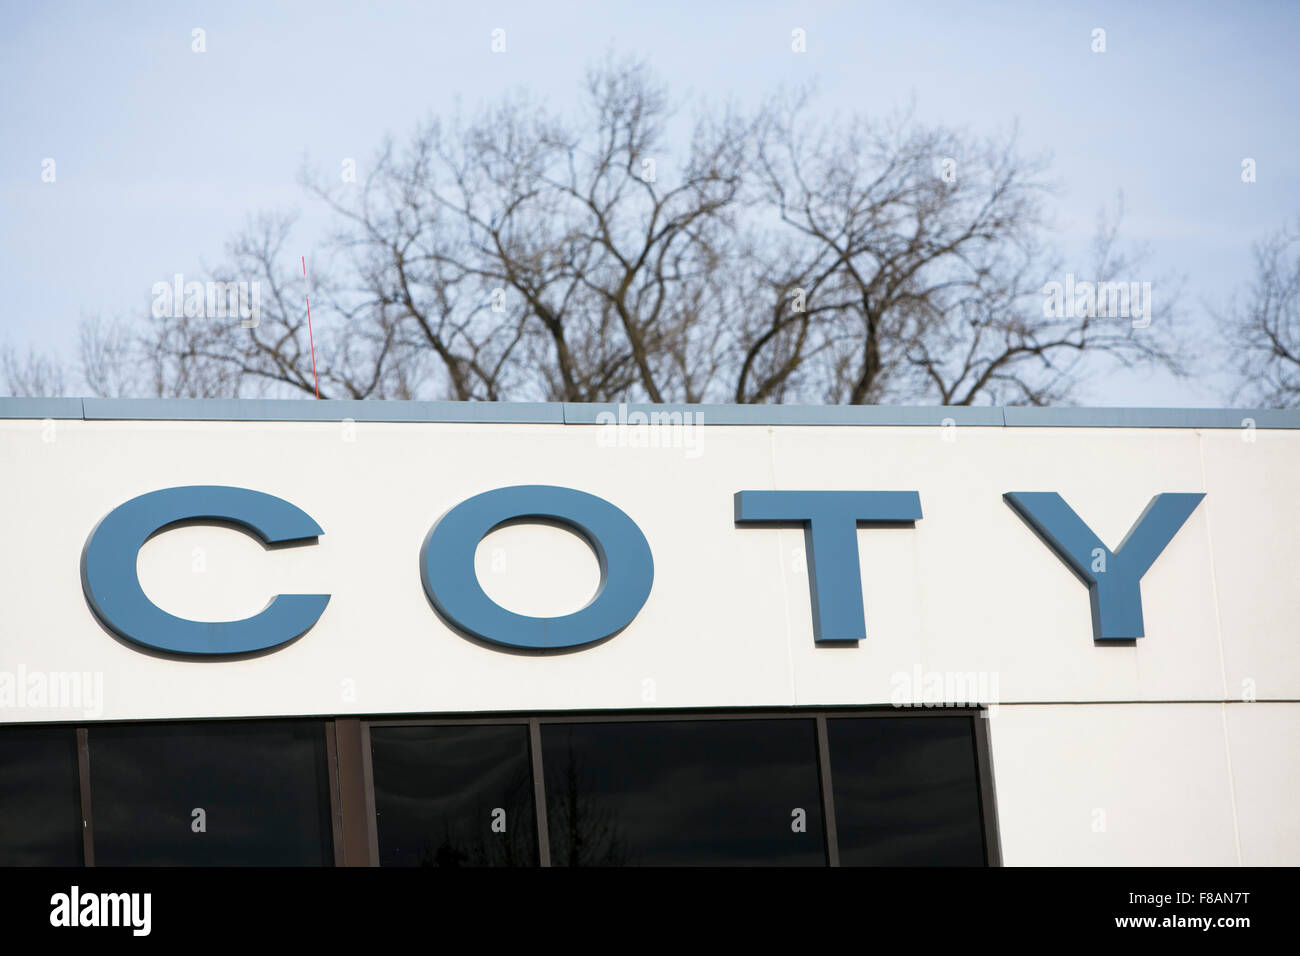 Coty Building Stock Photos Coty Building Stock Images Alamy